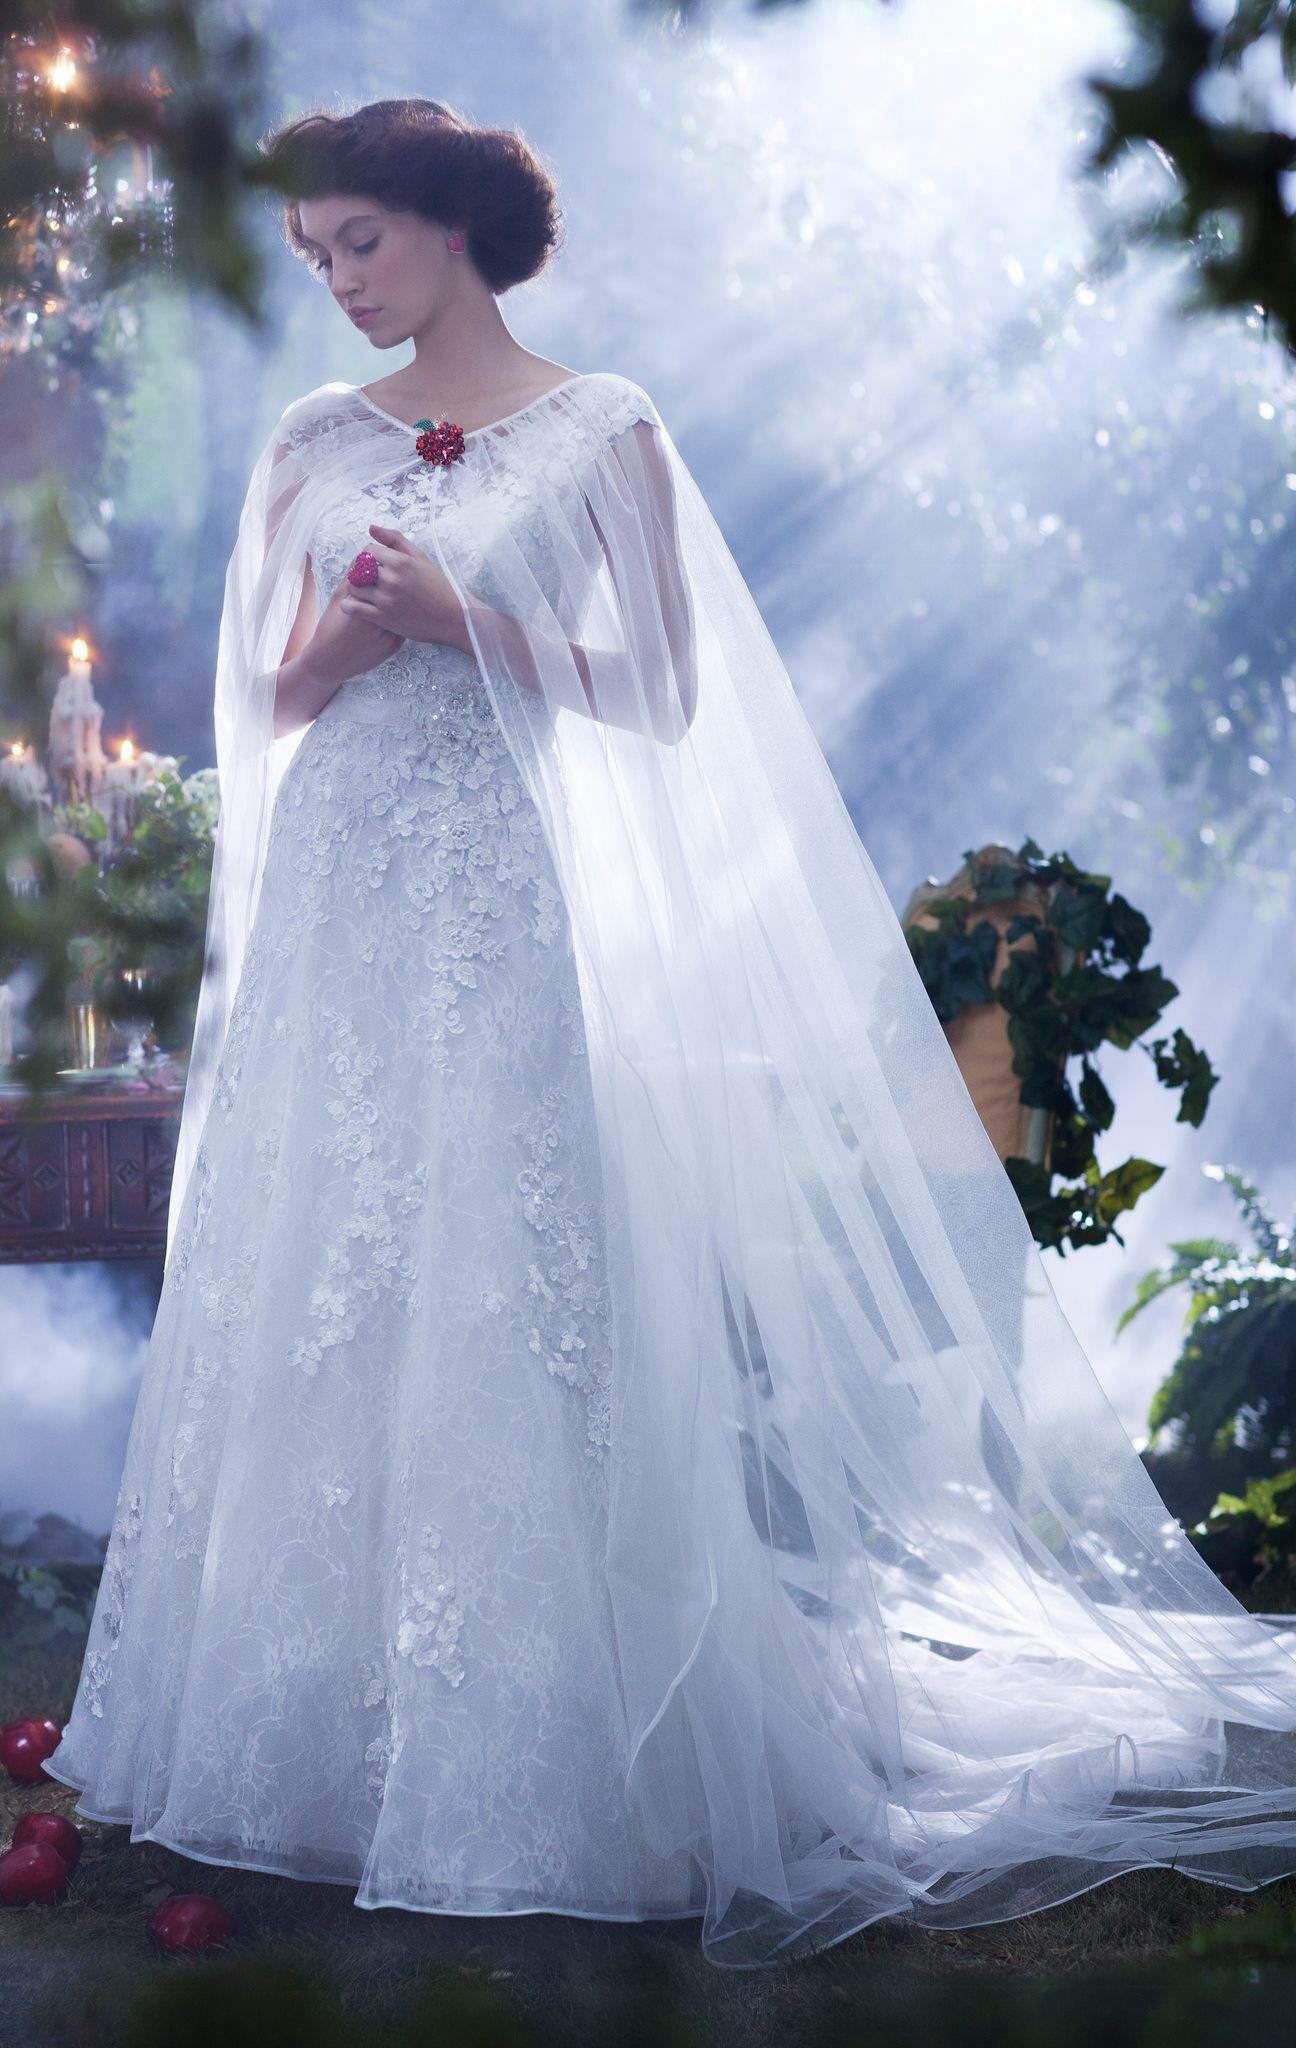 Which Disney Princess Wedding Gown Should You Get Married In Snow White Wedding Dress Disney Princess Wedding Wedding Gown Gallery